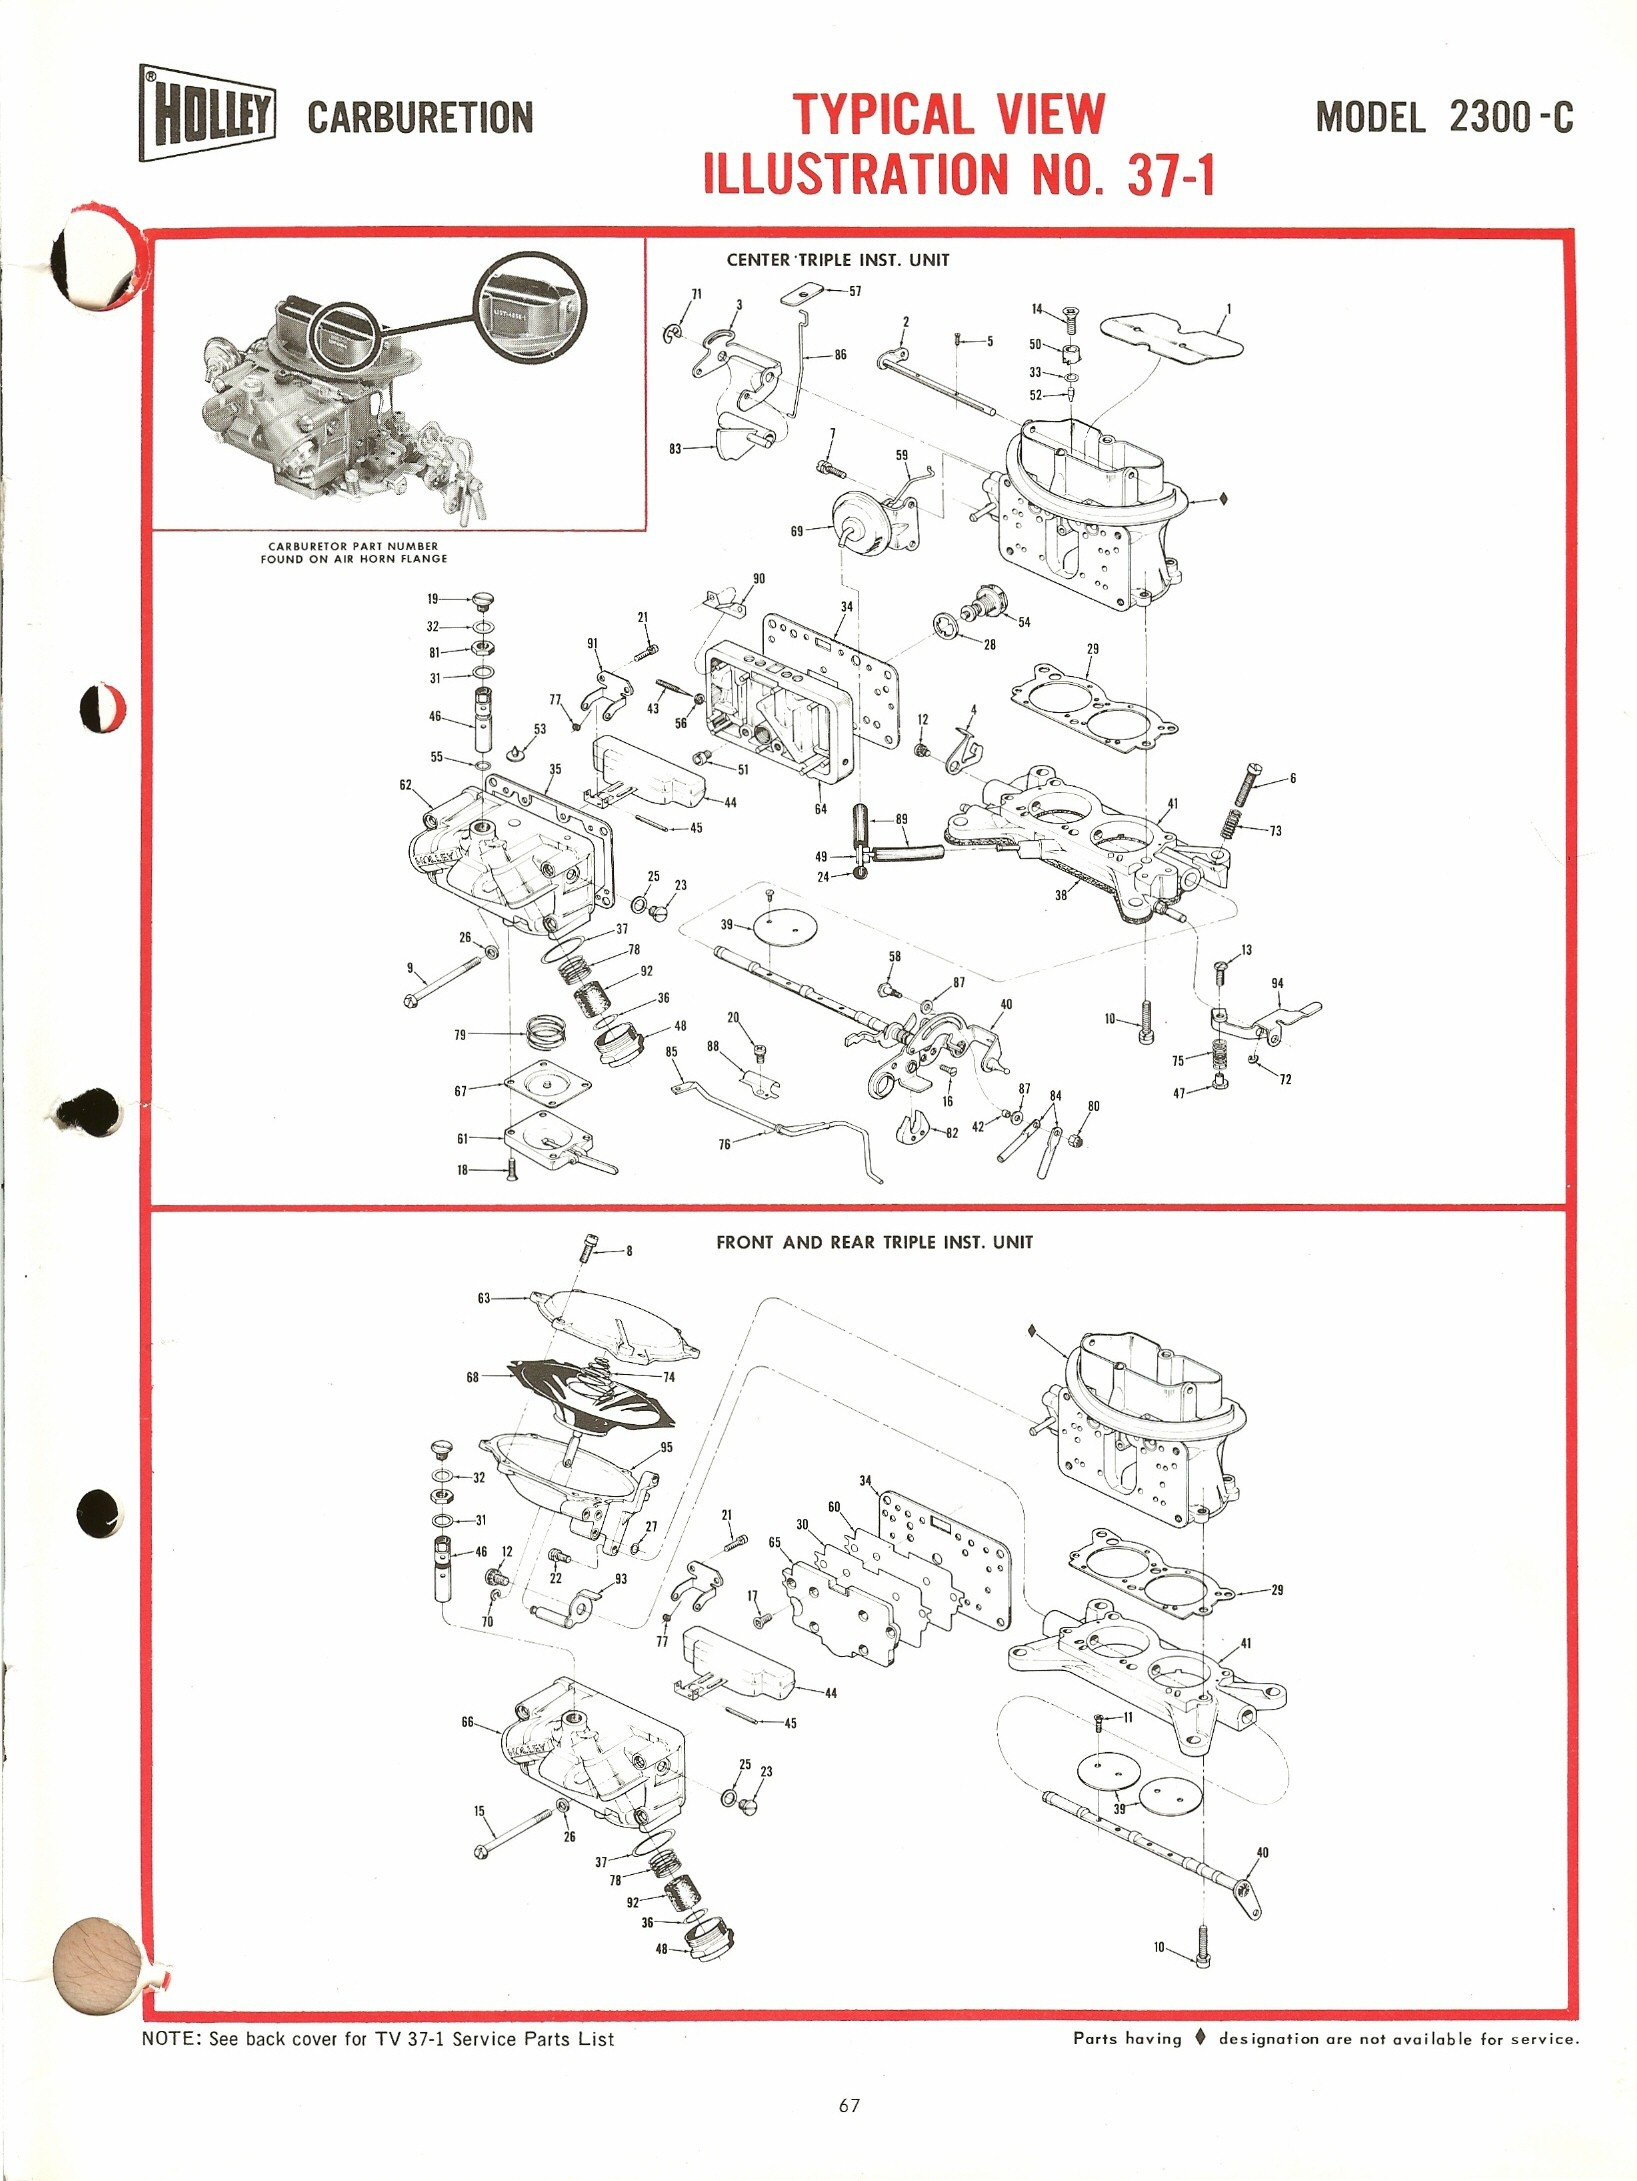 holley 2300c exploded diagrams the old car manual project rh oldcarmanualproject com